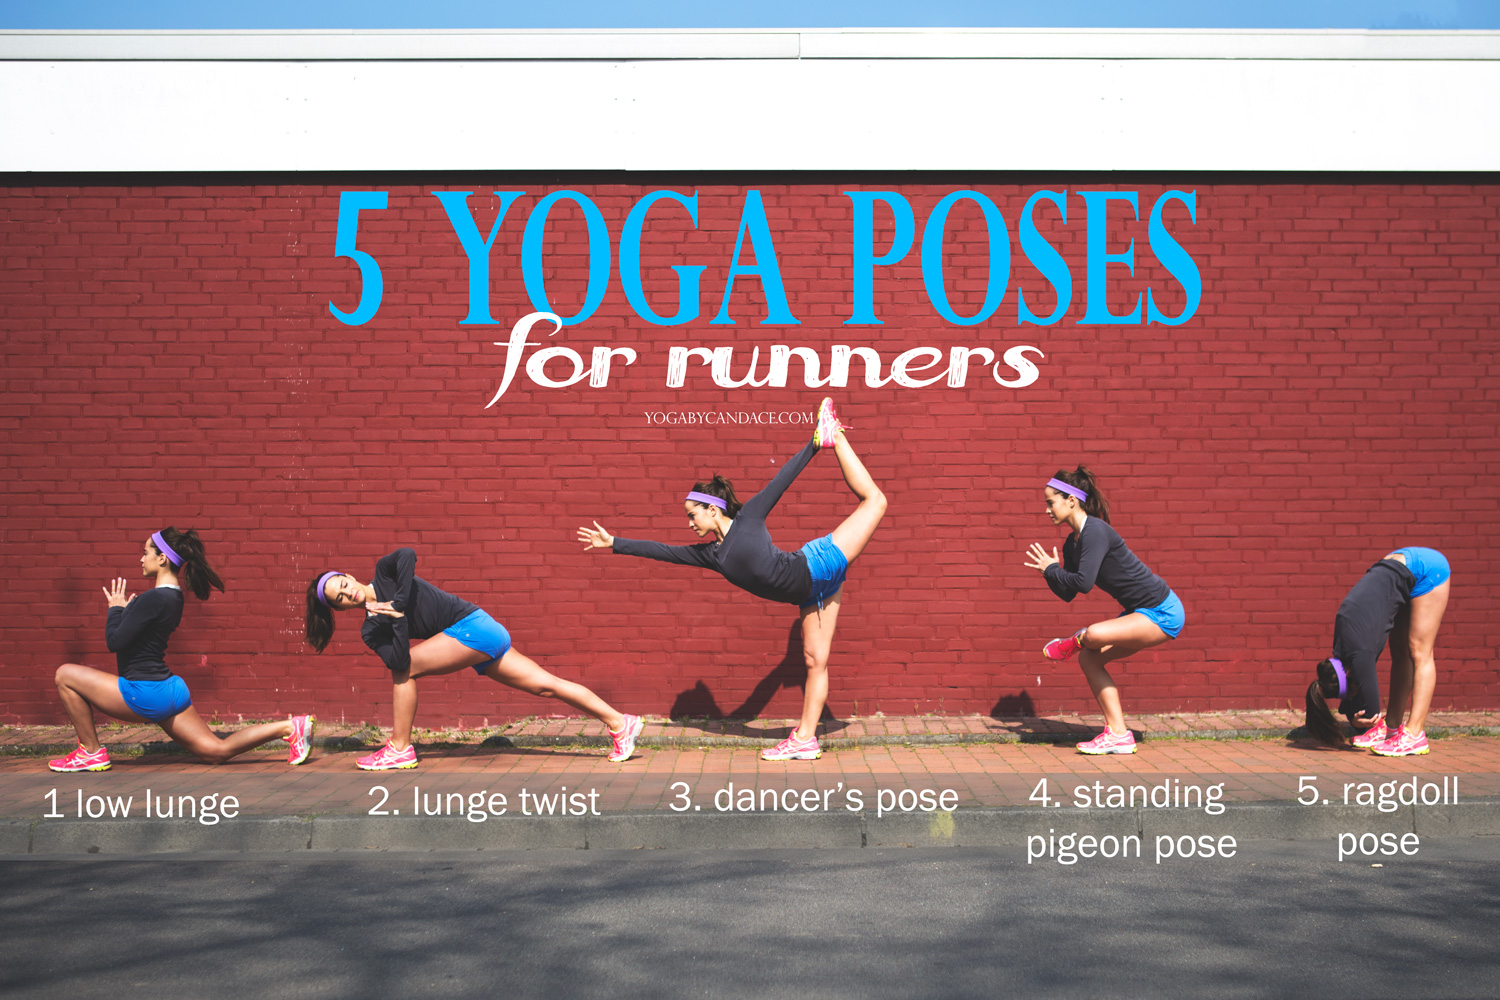 Pin it! 5 Yoga poses for runners. Click the pic to enlarge.  Wearing:  Asics sneakers , lululemon shorts and headband,  j crew painter's tee